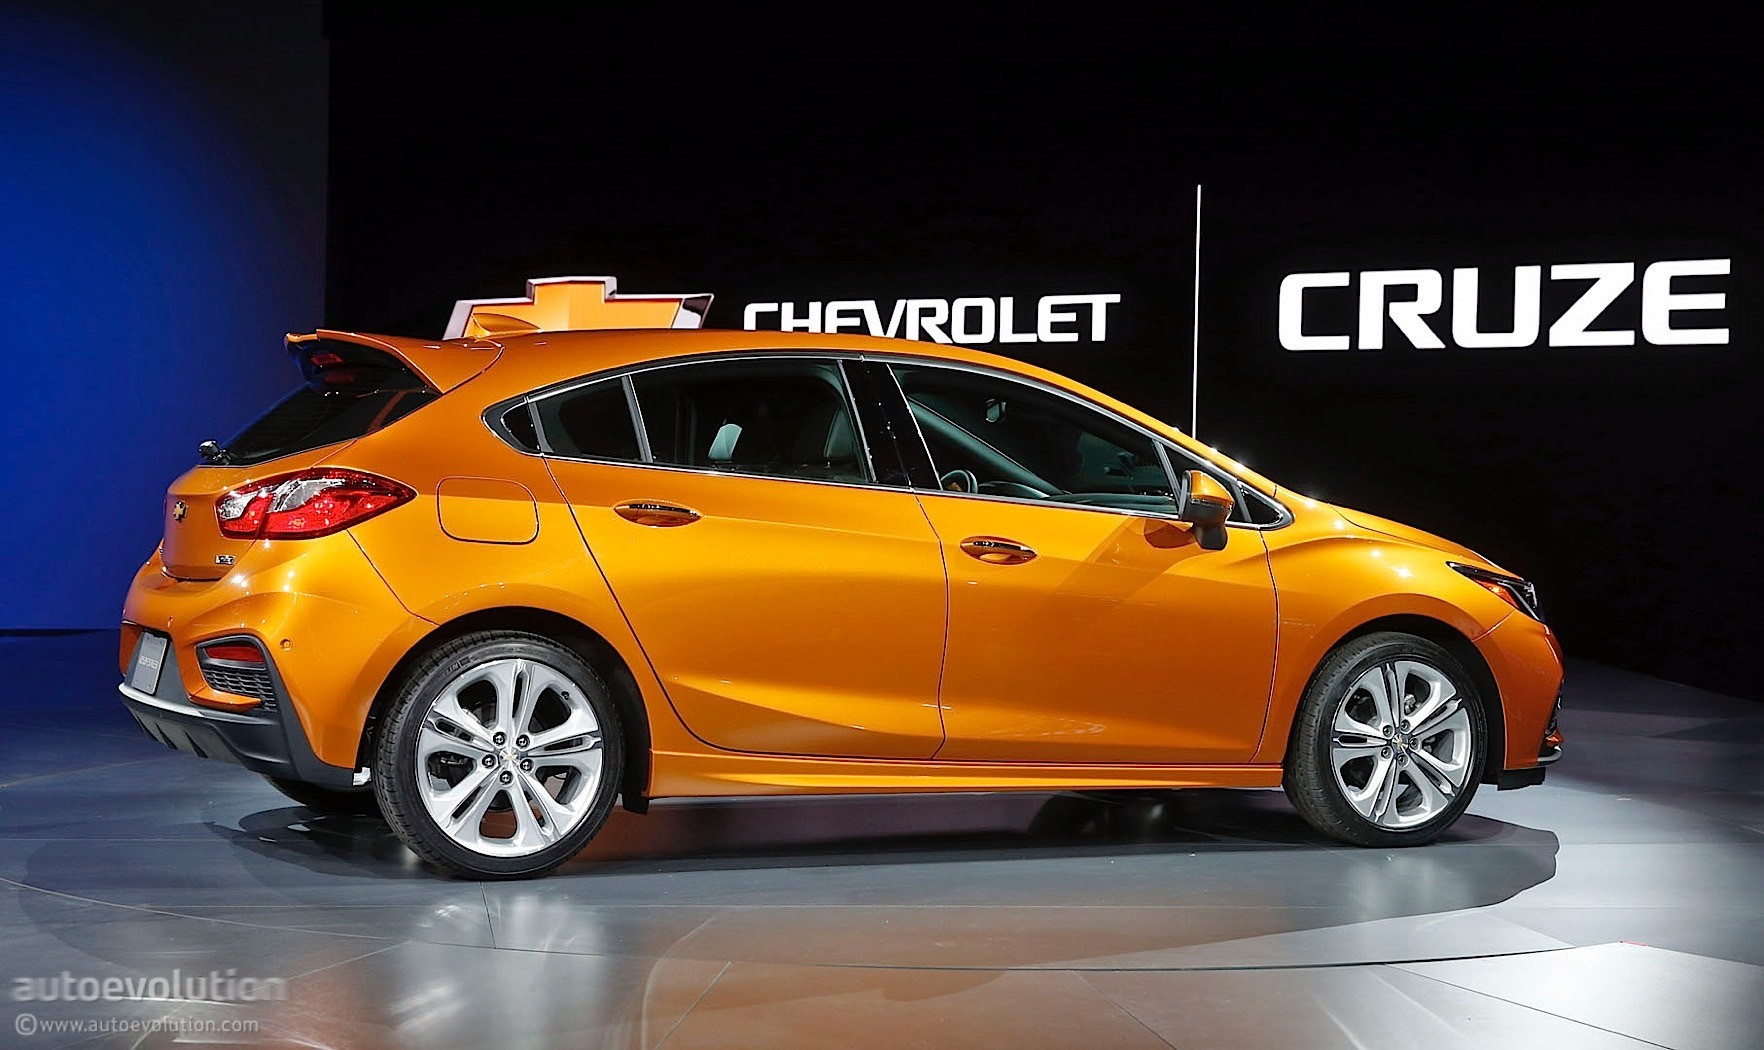 Chevy 2011 chevy cruze specs : 2017 Chevy Cruze Curb Weight | Best new cars for 2018